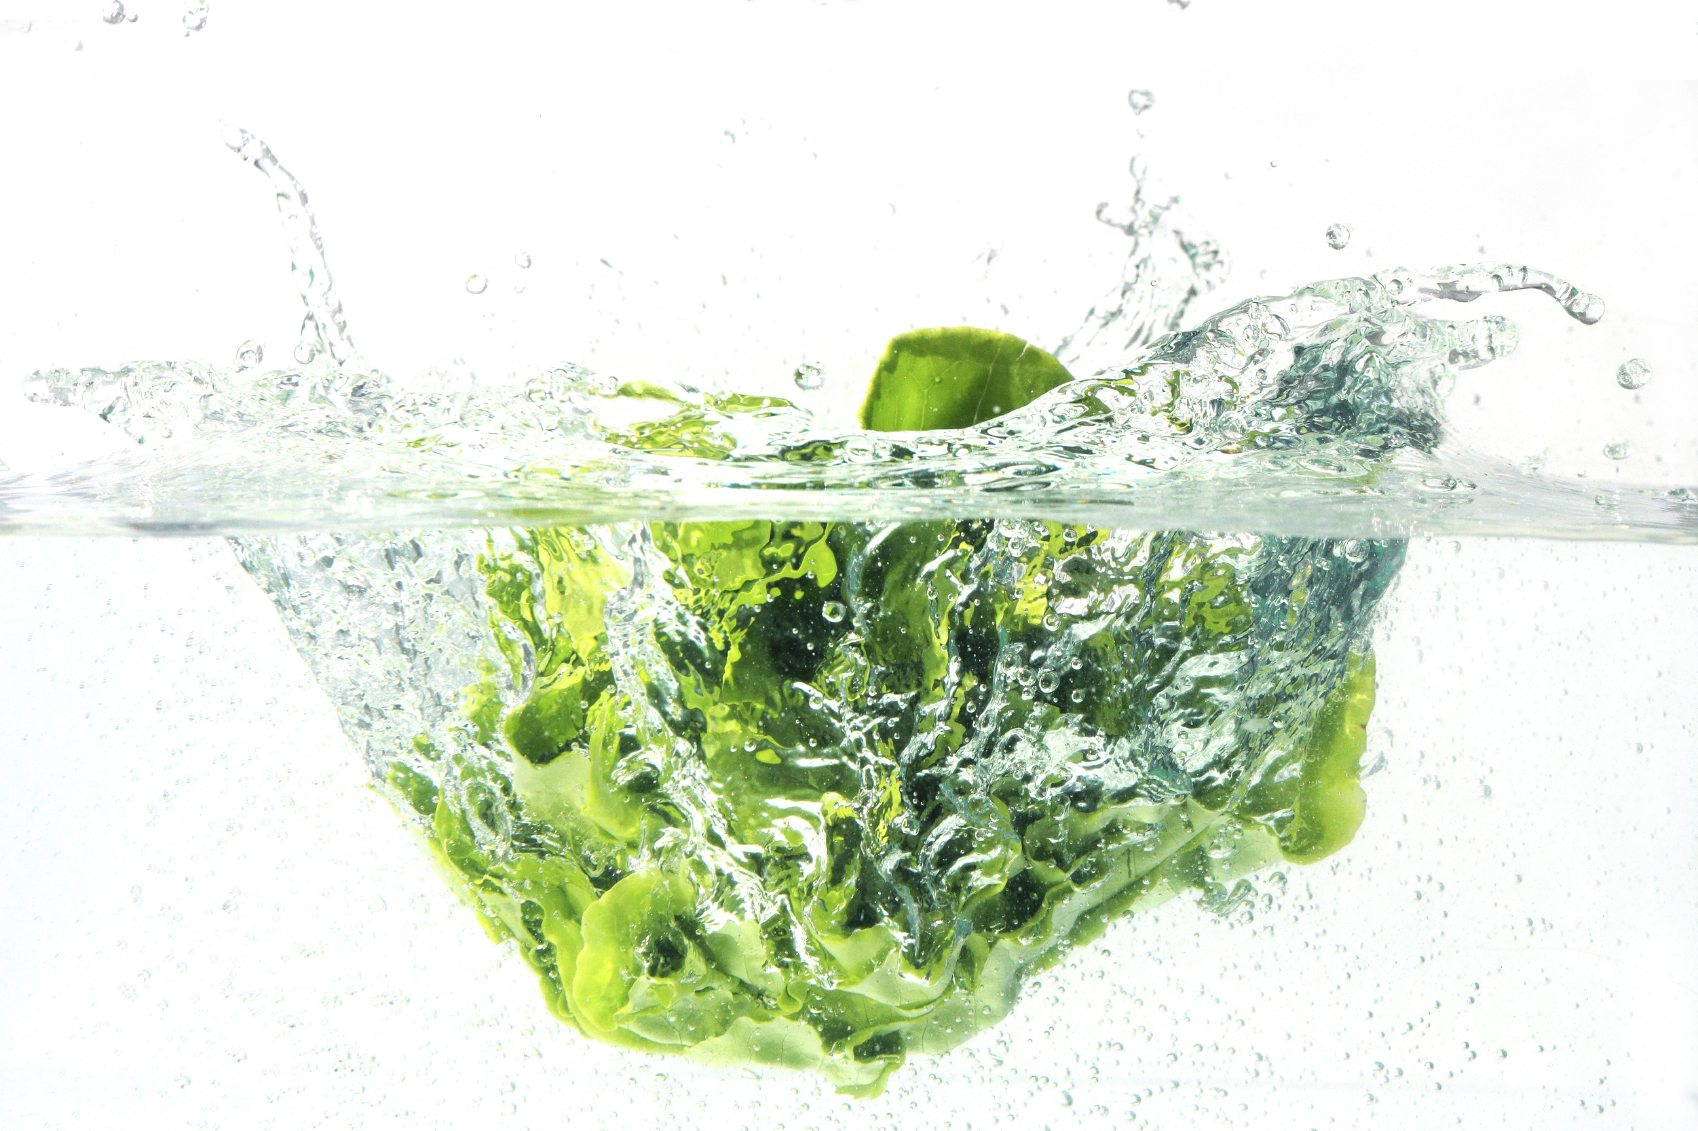 Tips for cleaning and storing lettuce Can a dirty house make you sick